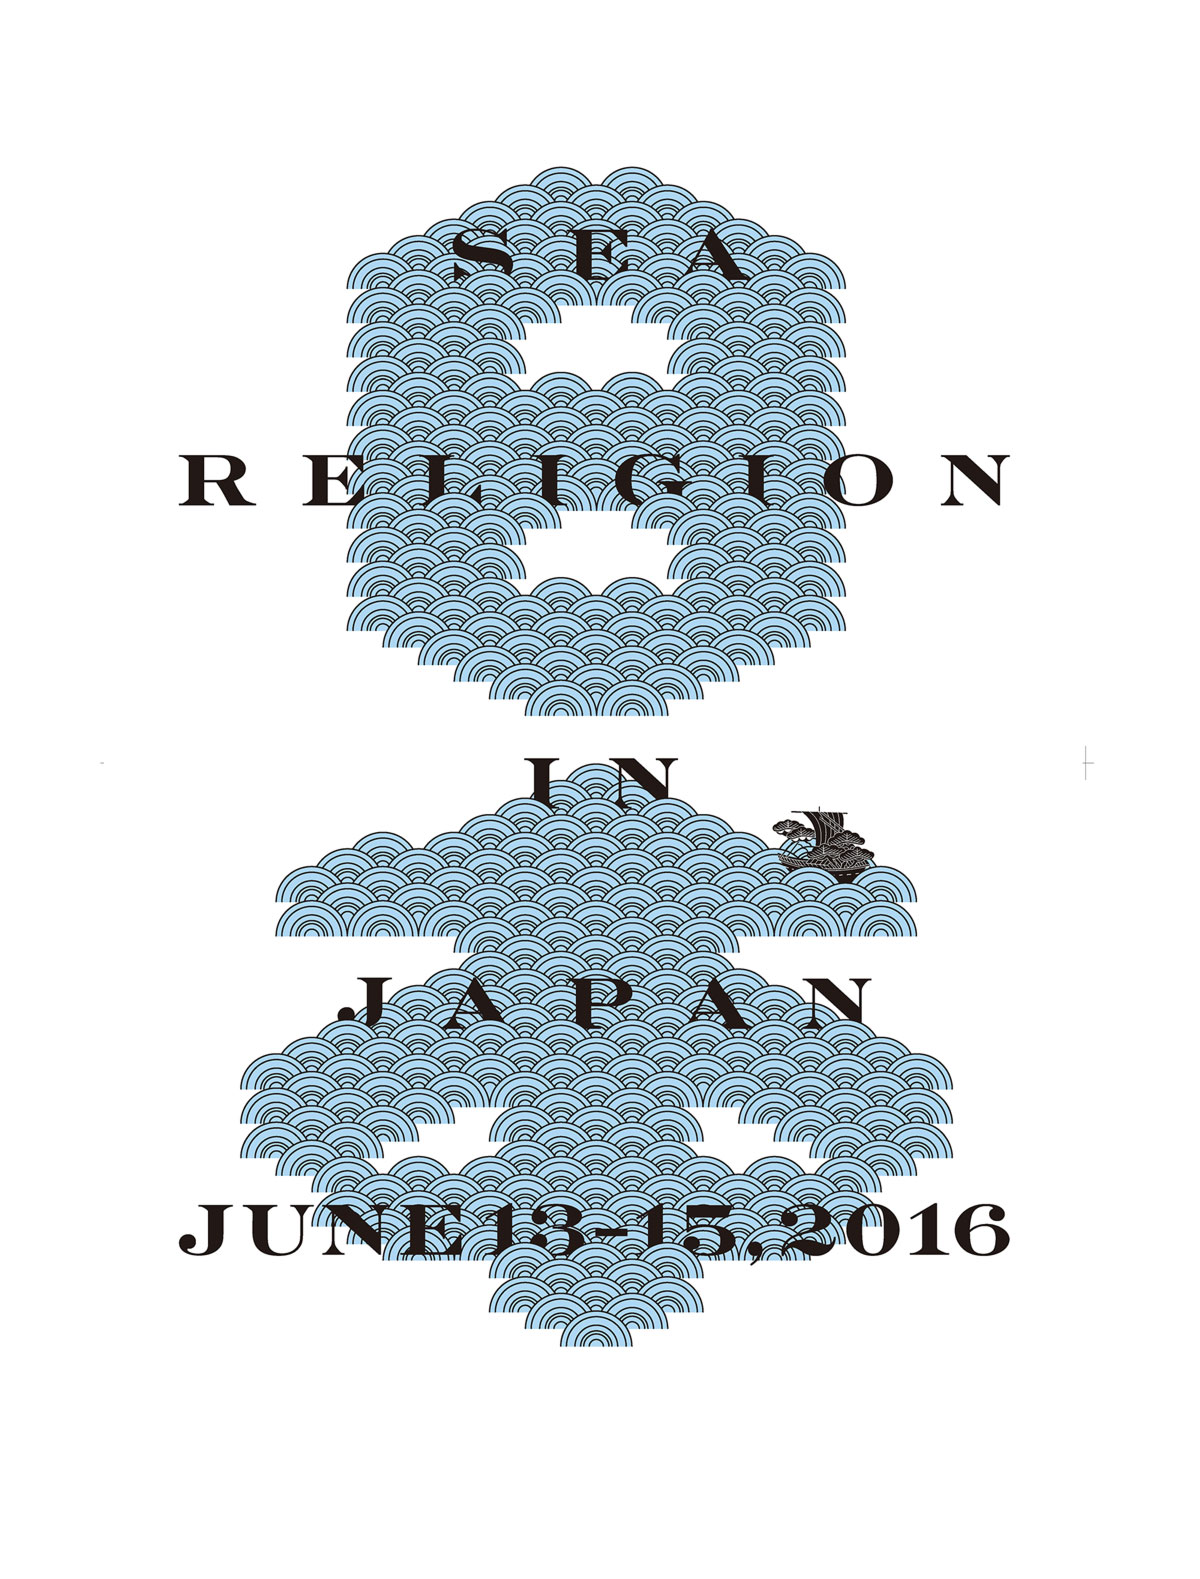 Sea Religion in Japan conference logo